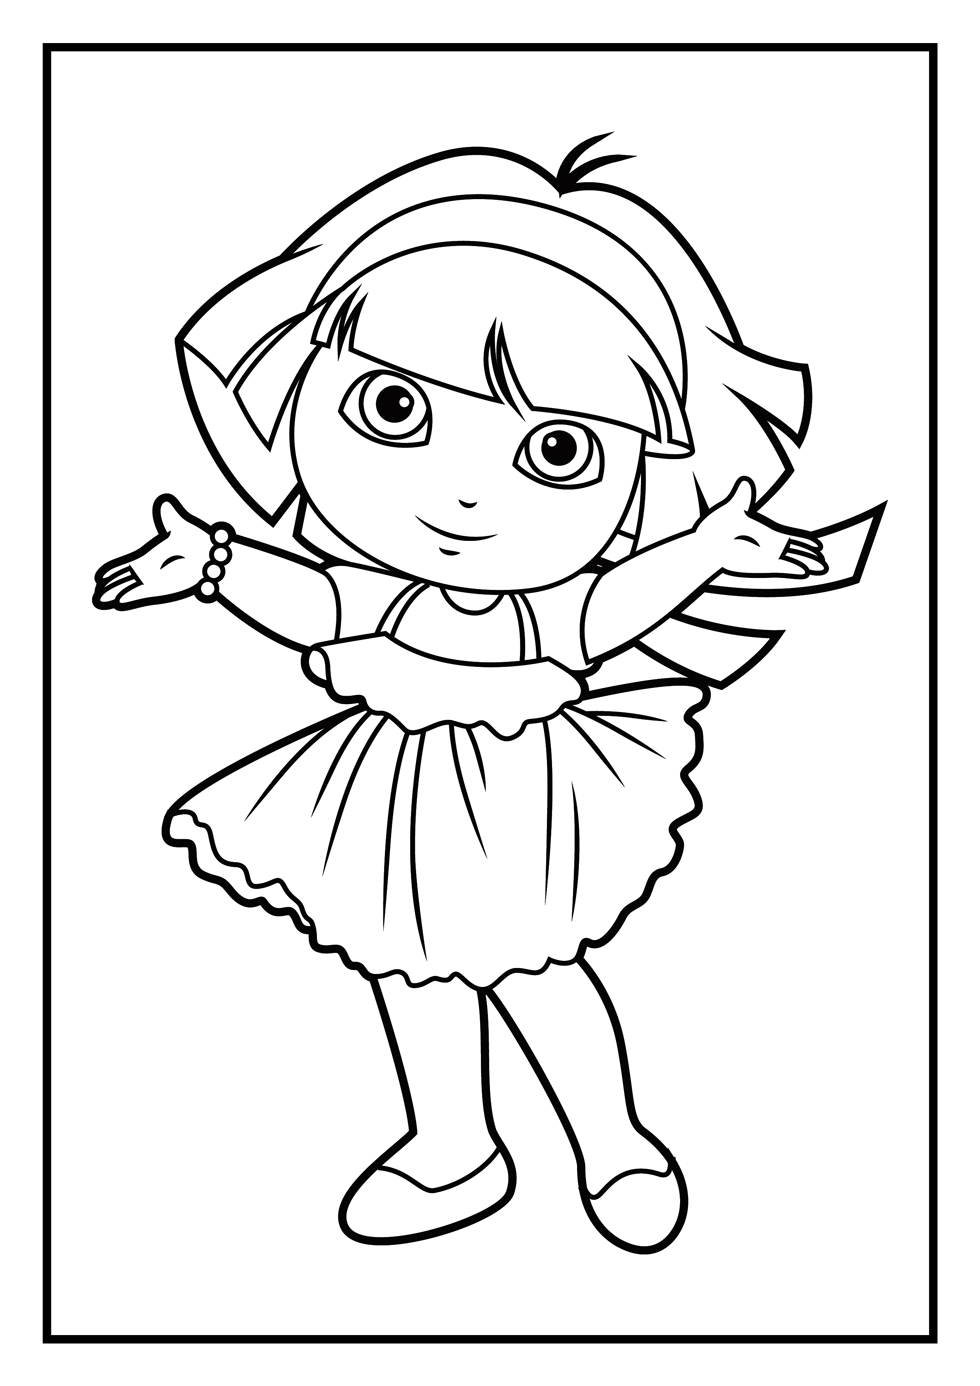 dora coloring pages Free Printable Online dora coloring